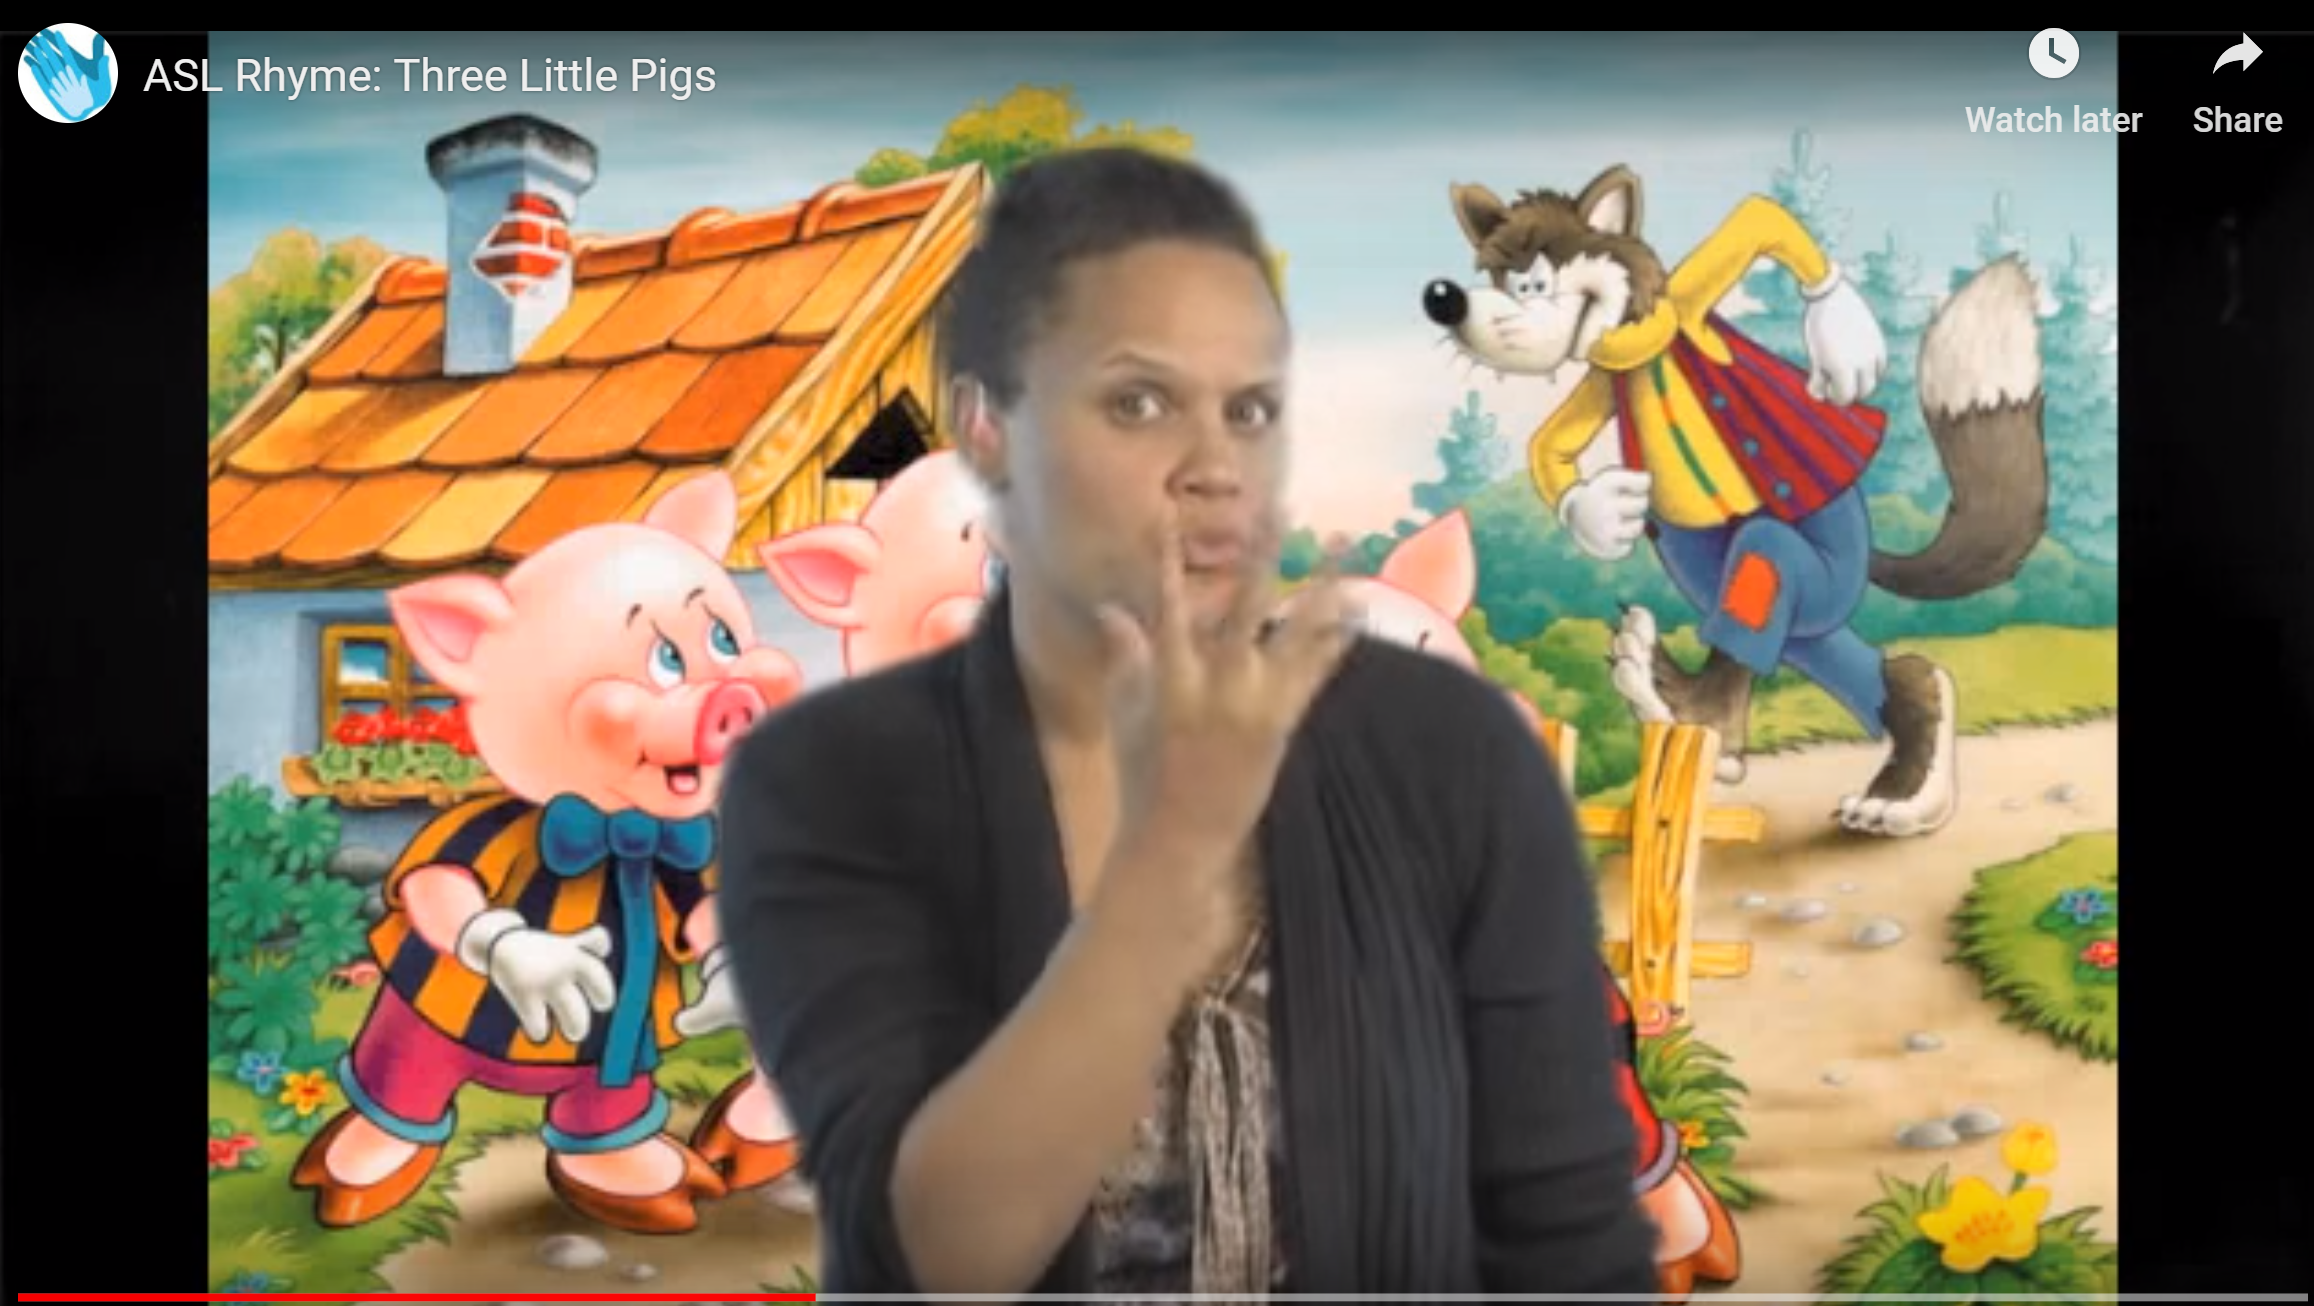 This screenshot of a frozen scene from a video shows a woman signing to the camera. Behind her is a drawing from a children's book that shows three pigs in front of a house. A wolf is walking toward the pigs.